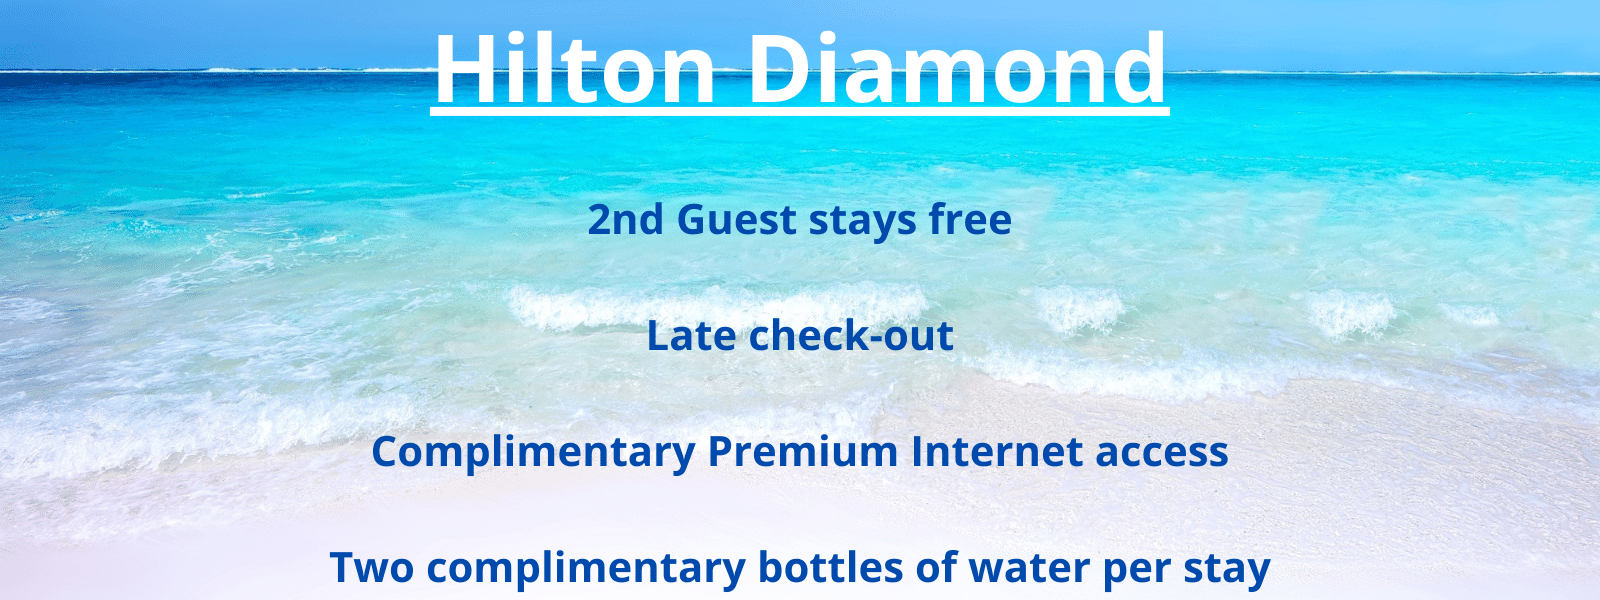 Hilton Honors Diamond Status